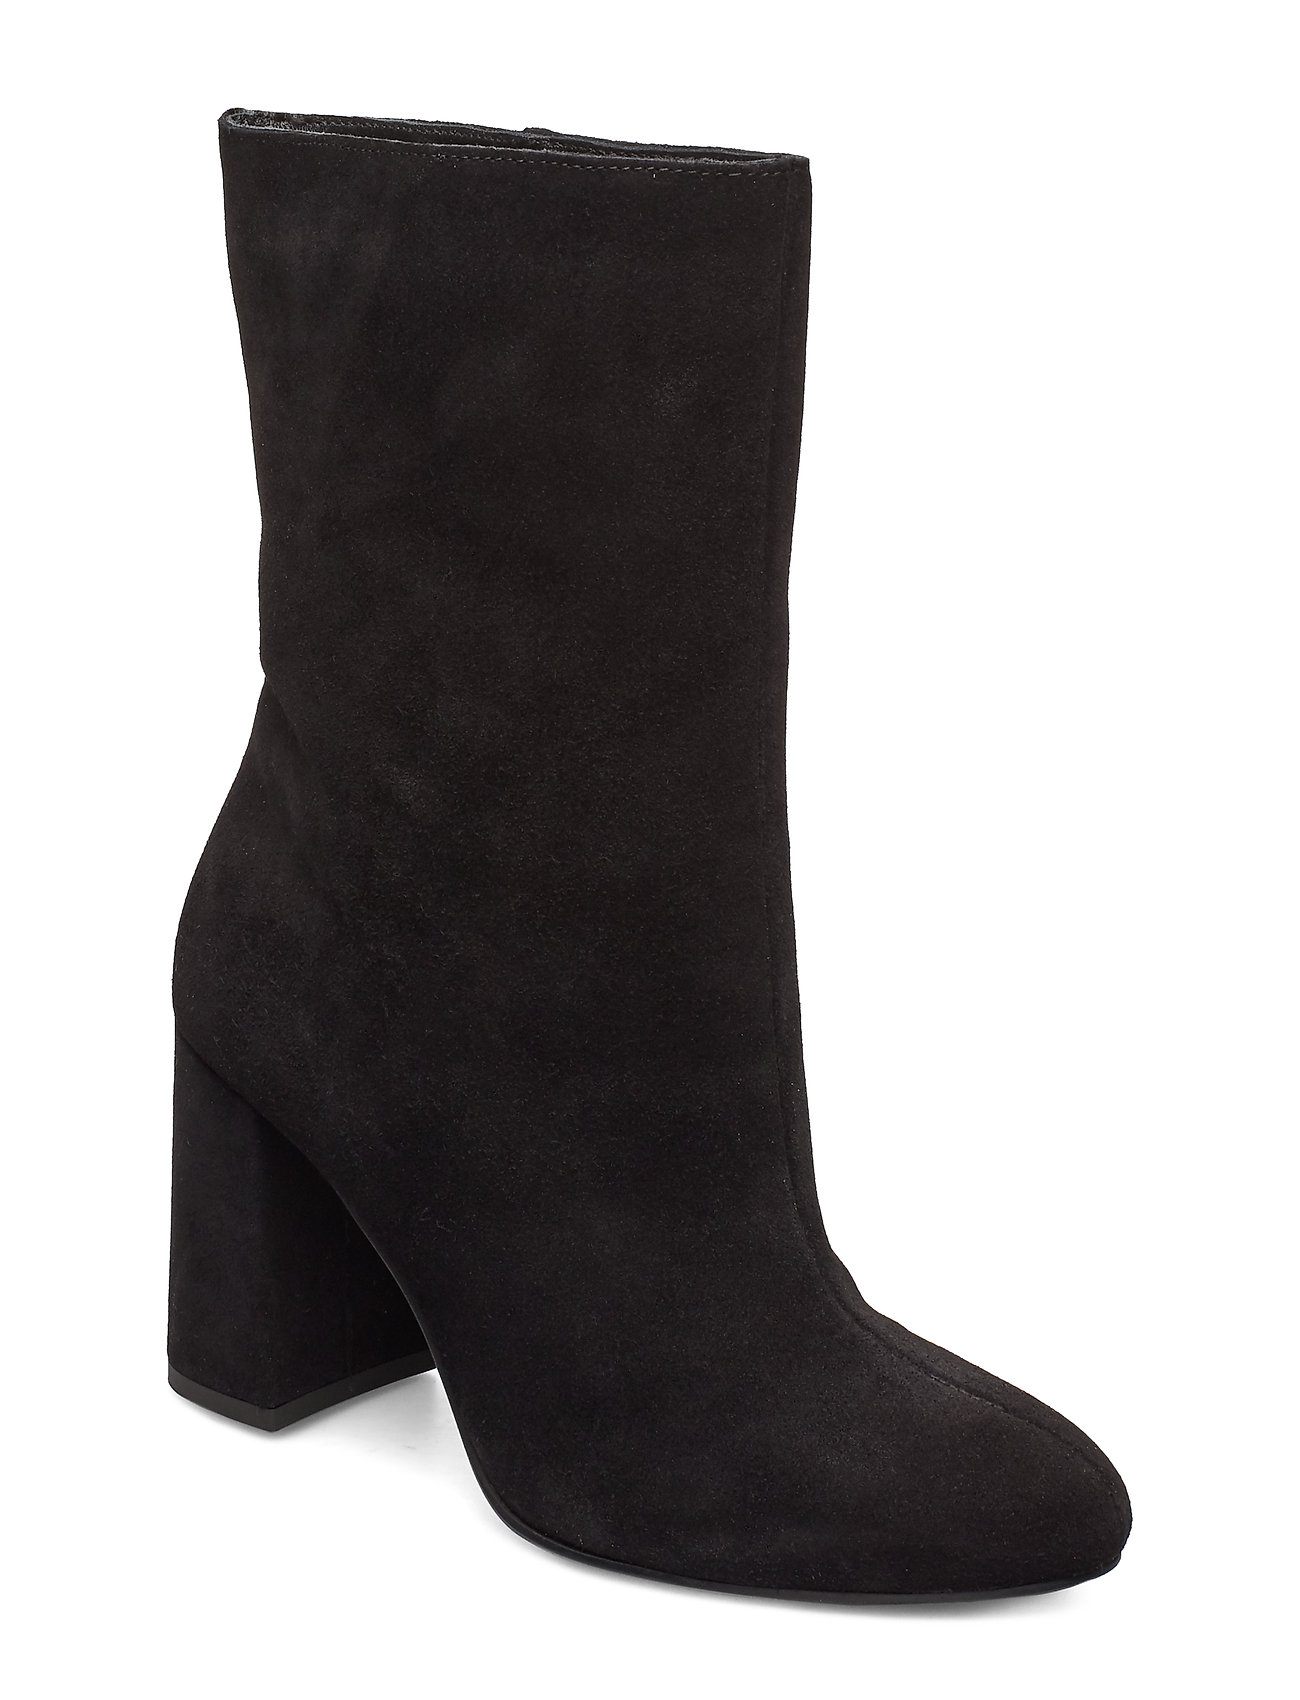 Image of Biacandice Suede Tube Boot Shoes Boots Ankle Boots Ankle Boot - Heel Sort Bianco (3413103739)